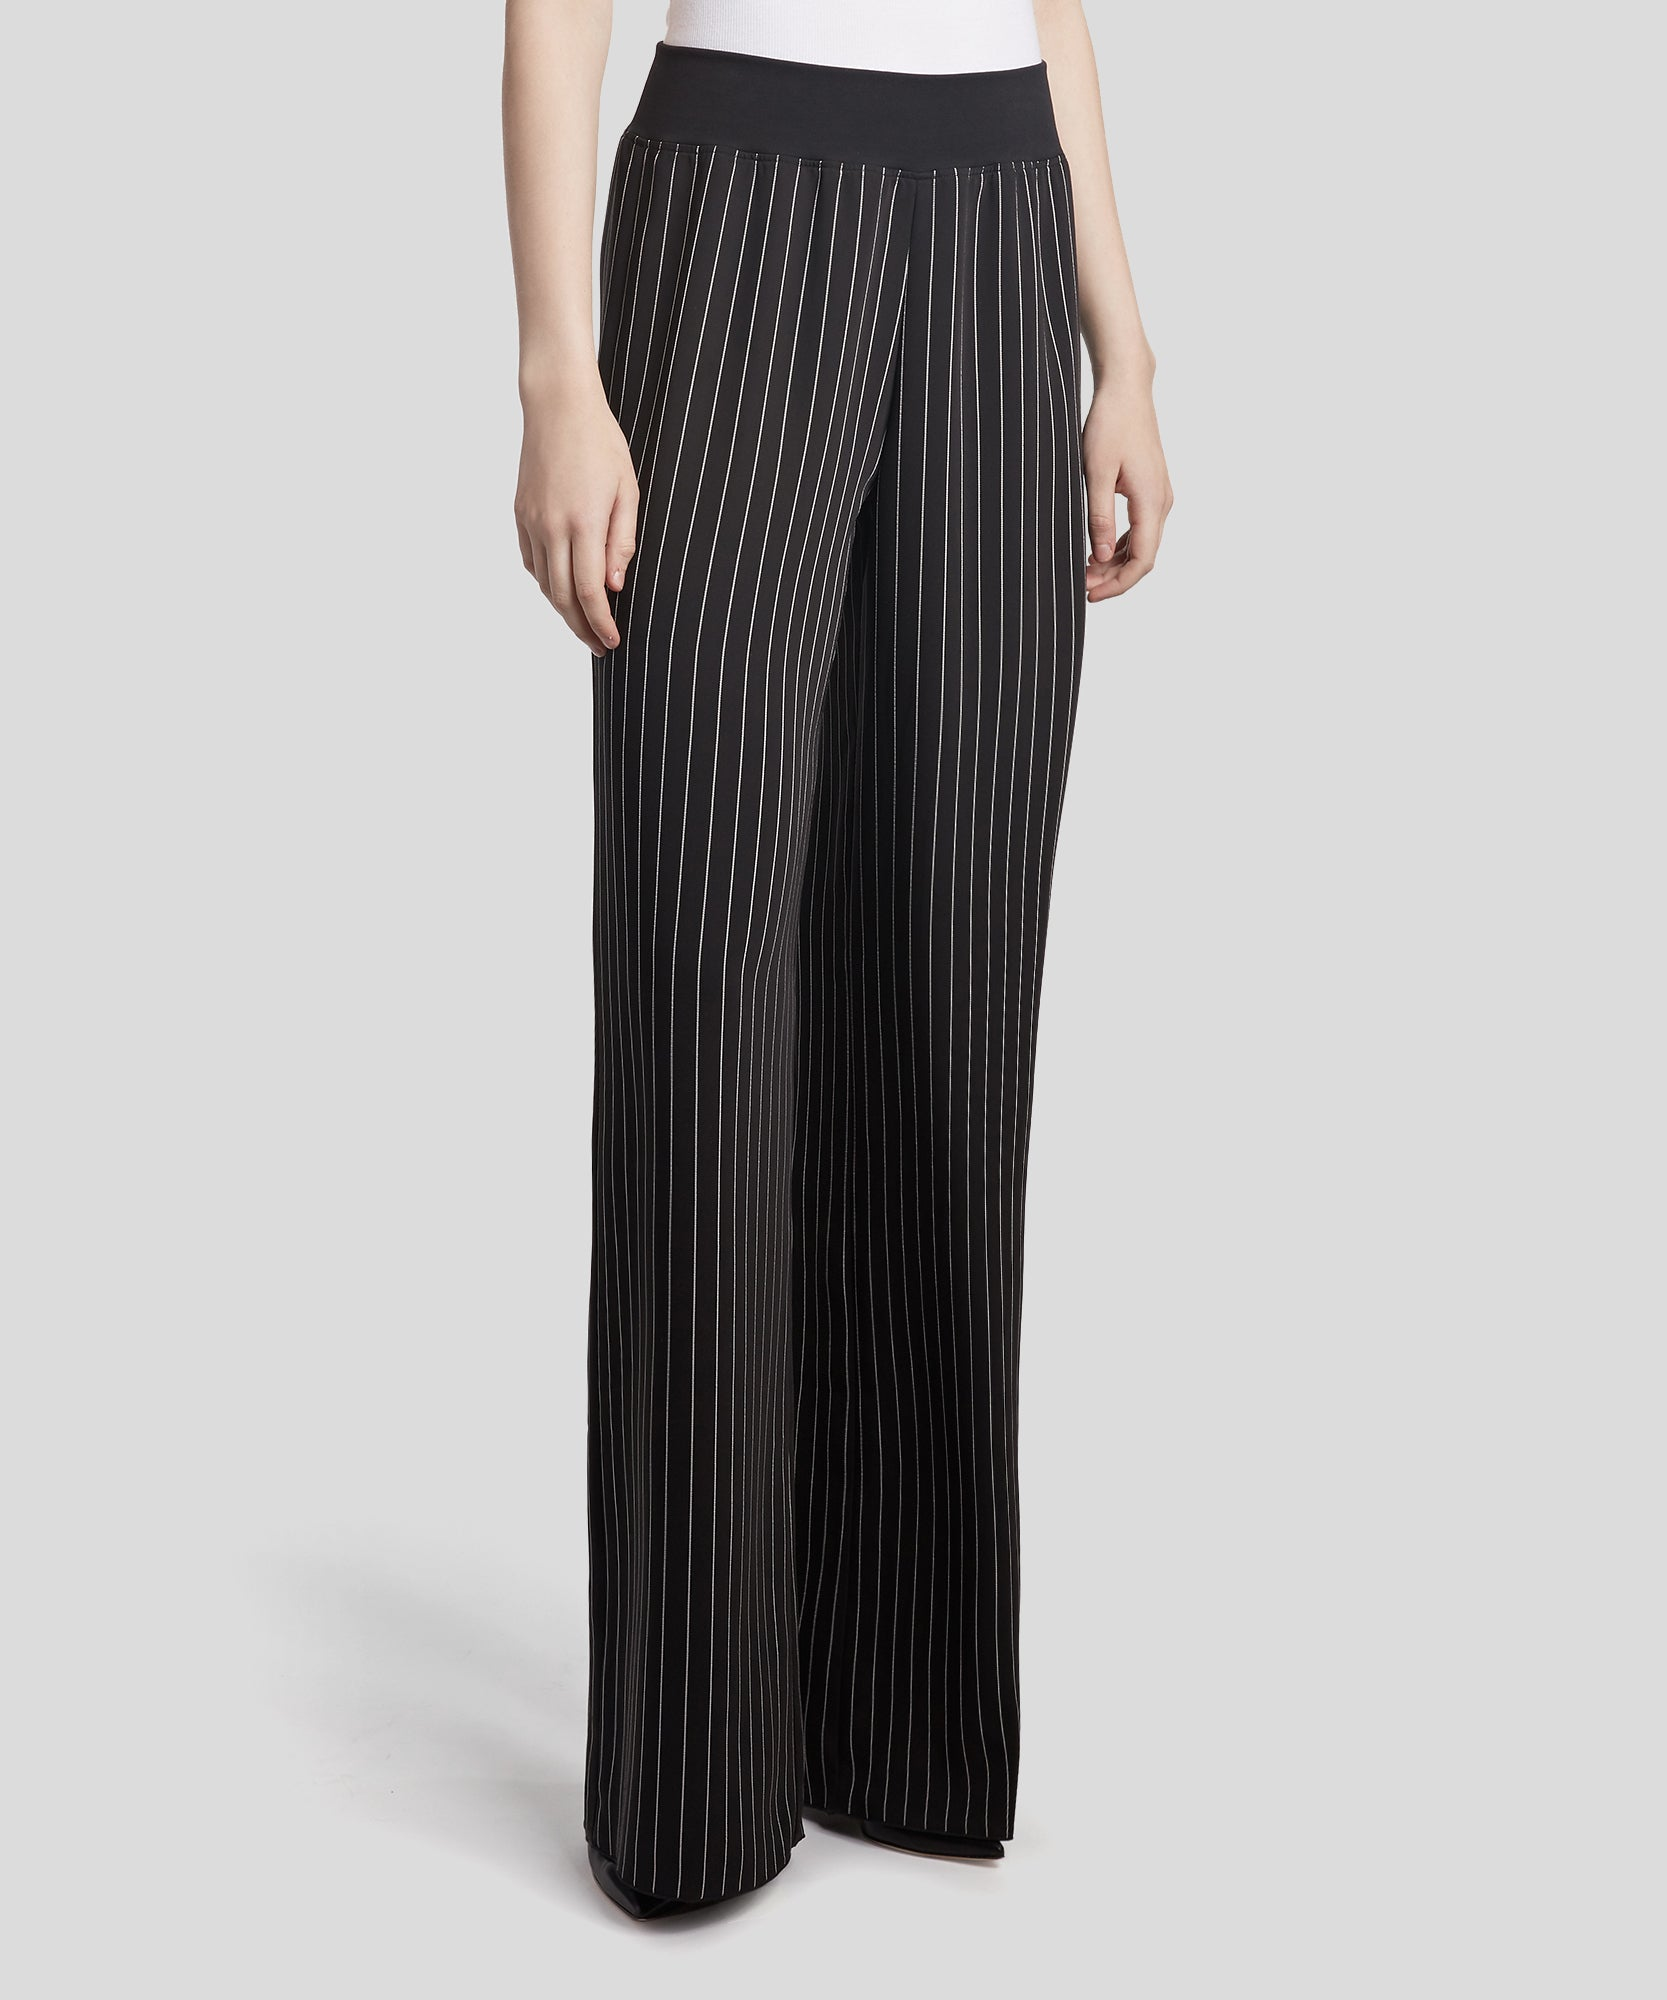 Black and White Striped Wide Leg Pants - Women's Luxe Pants ATM Anthony Thomas Melillo